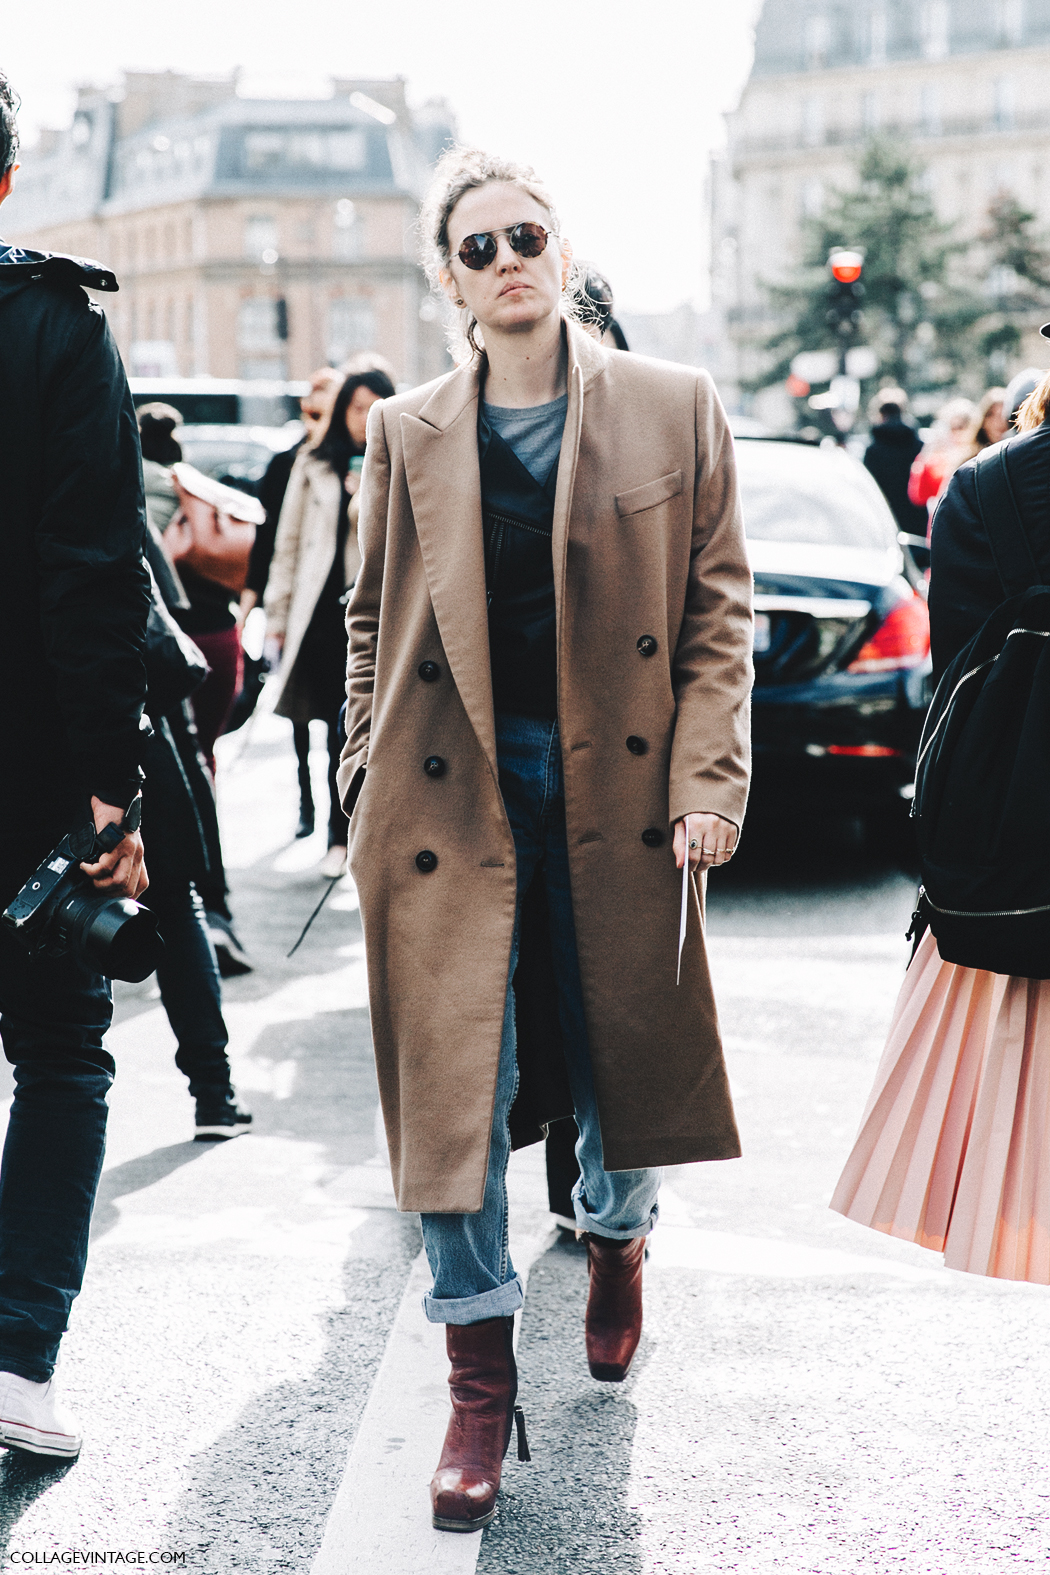 PFW-Paris_Fashion_Week_Fall_2016-Street_Style-Collage_Vintage-Layers-Camel_Coat-Biker-